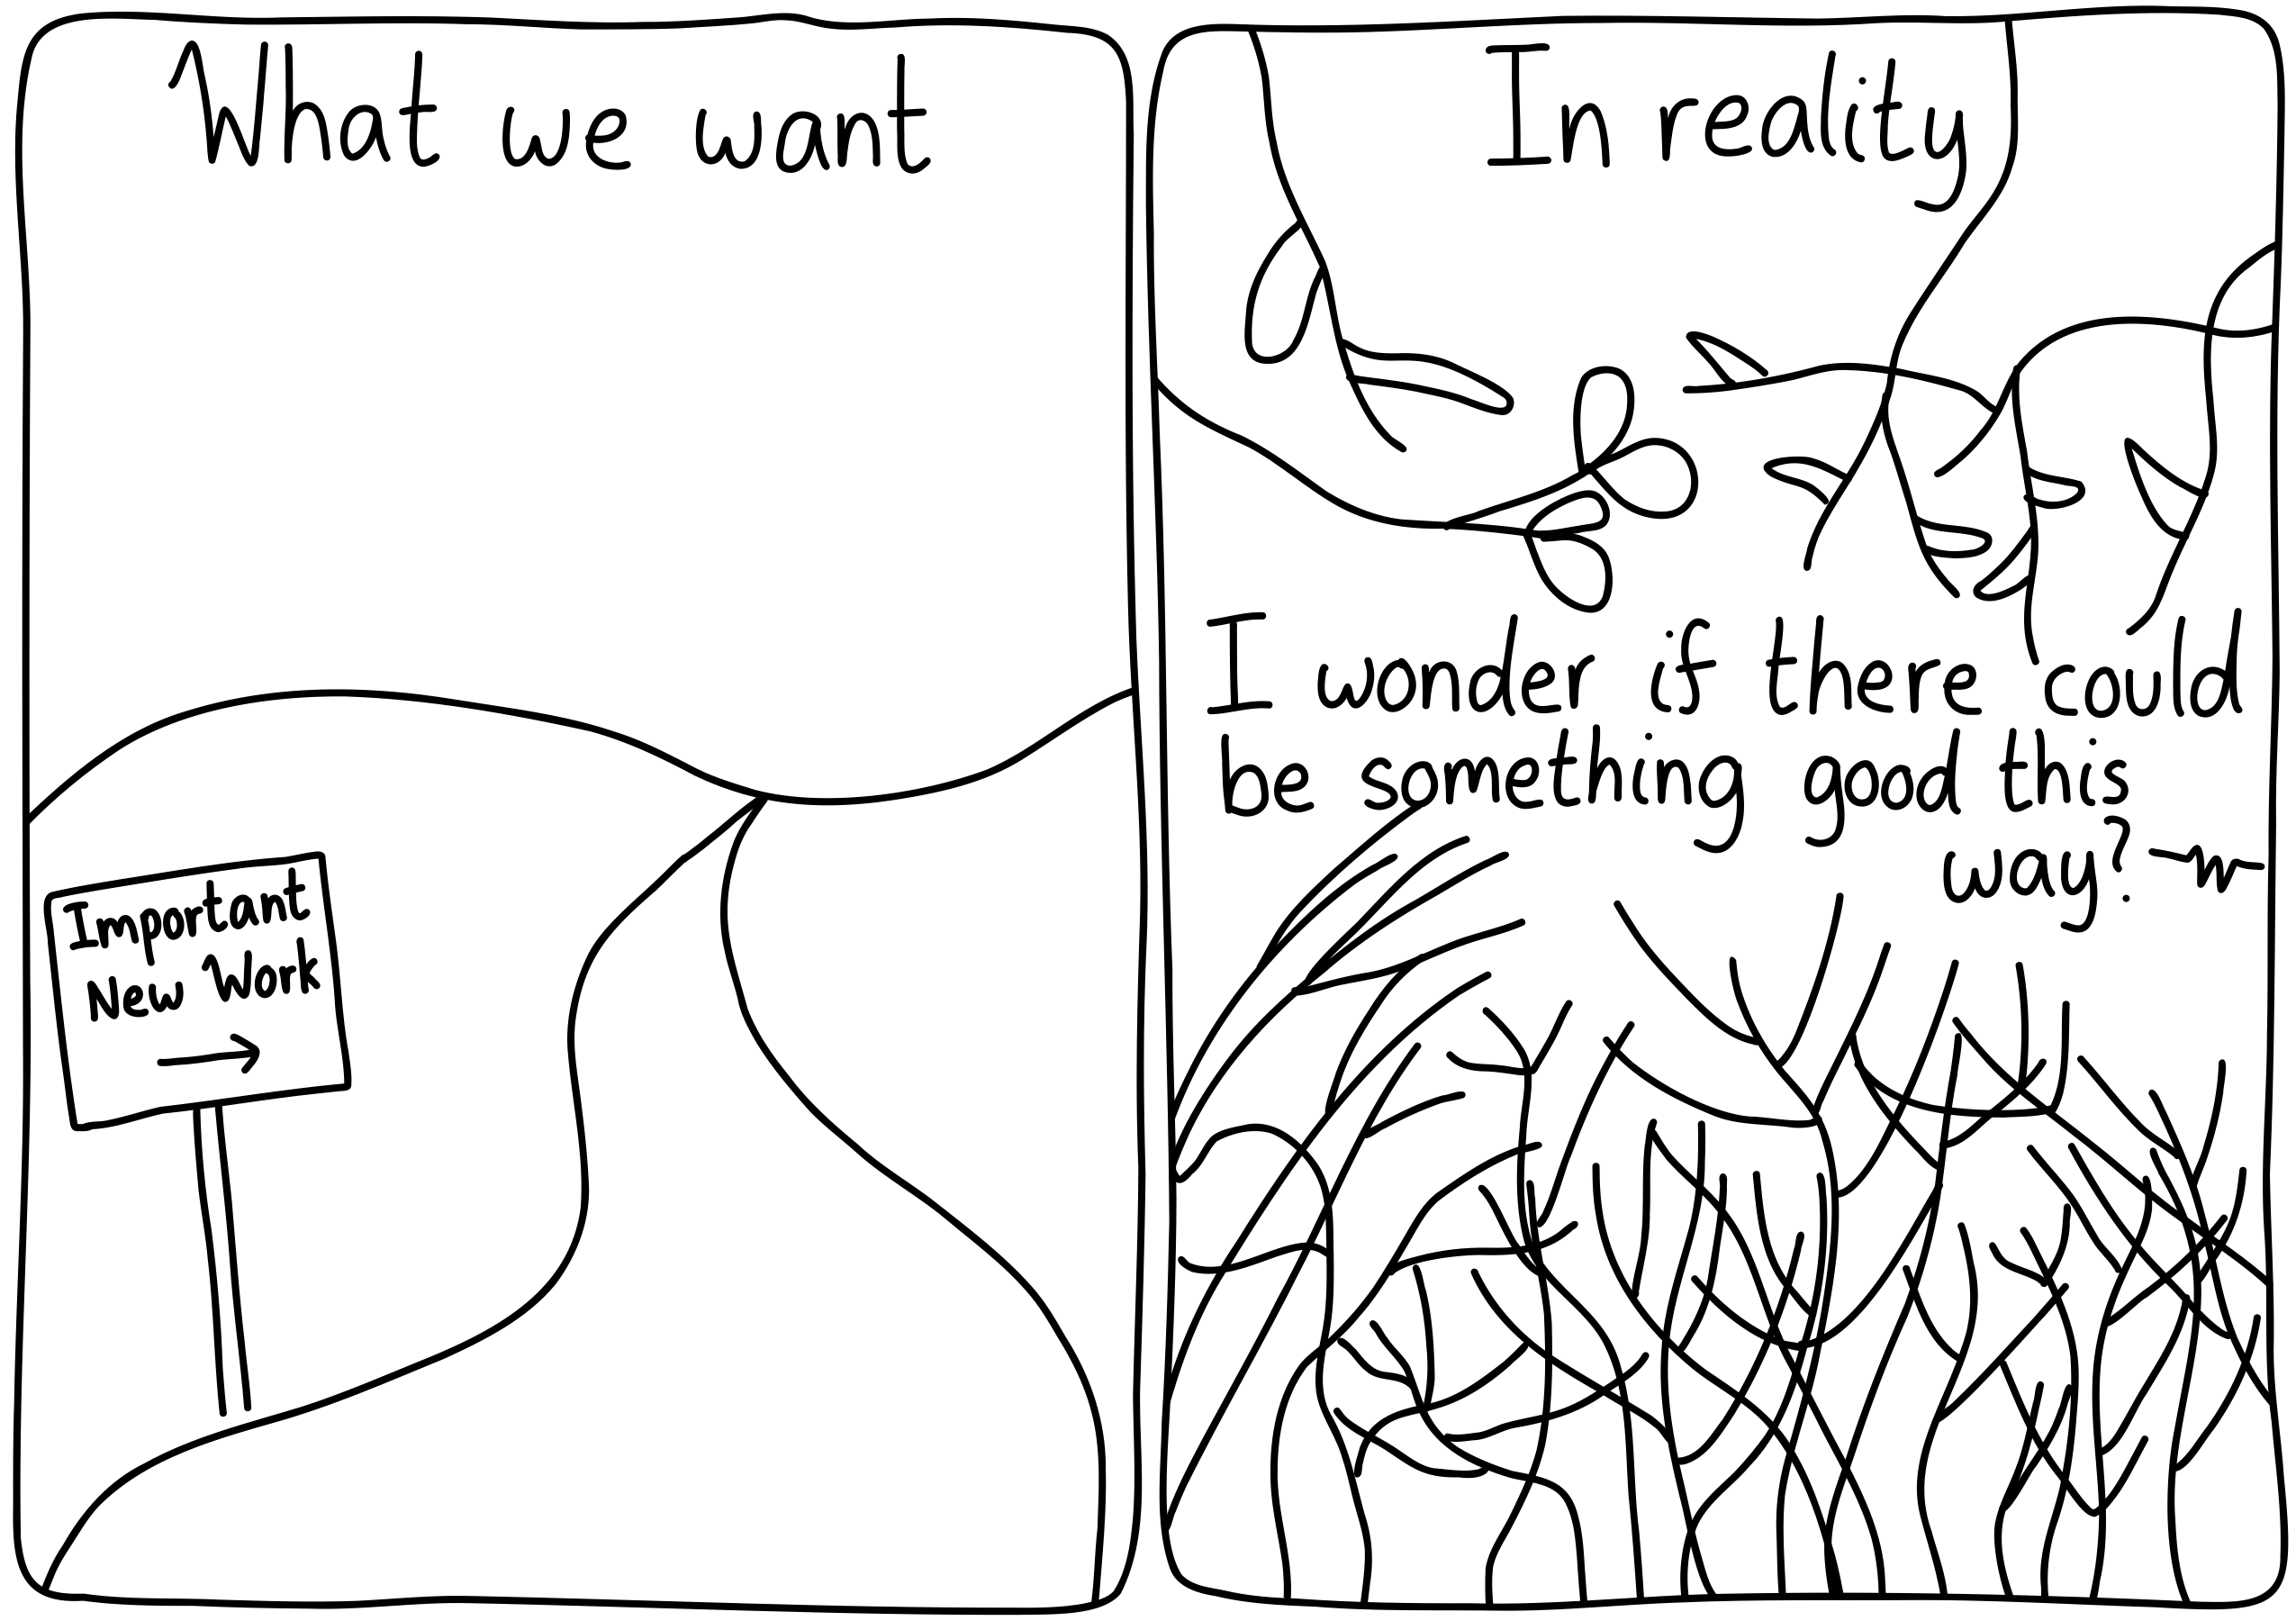 """Left panel: (What we want) A clear path with a sign pointing to new work. Right panel: (In reality) A dense jungle with no path, and a person asking, """"I wonder if there could be something good this way?"""""""